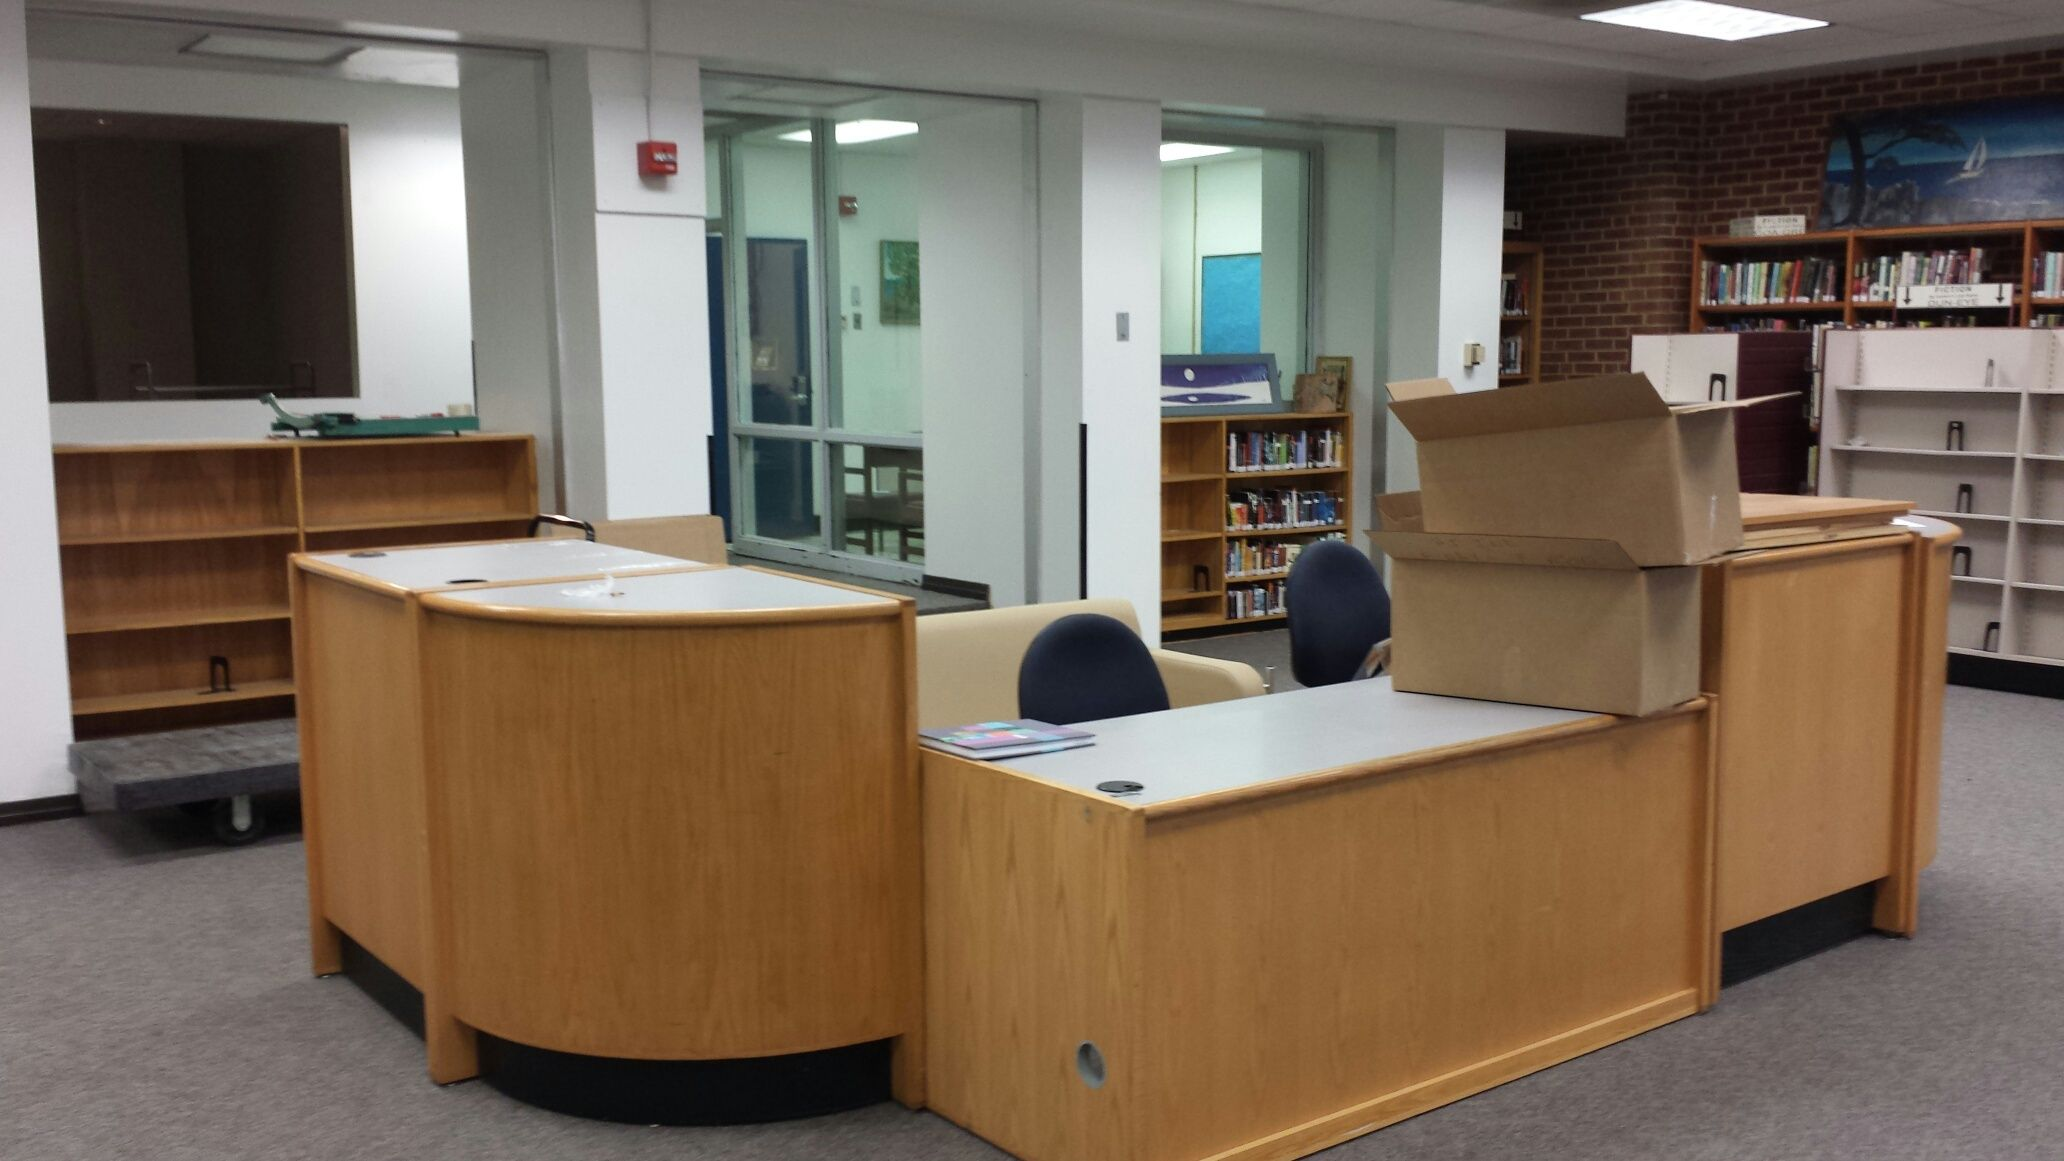 Library Furniture Circulation Desk Google Search Pinterest